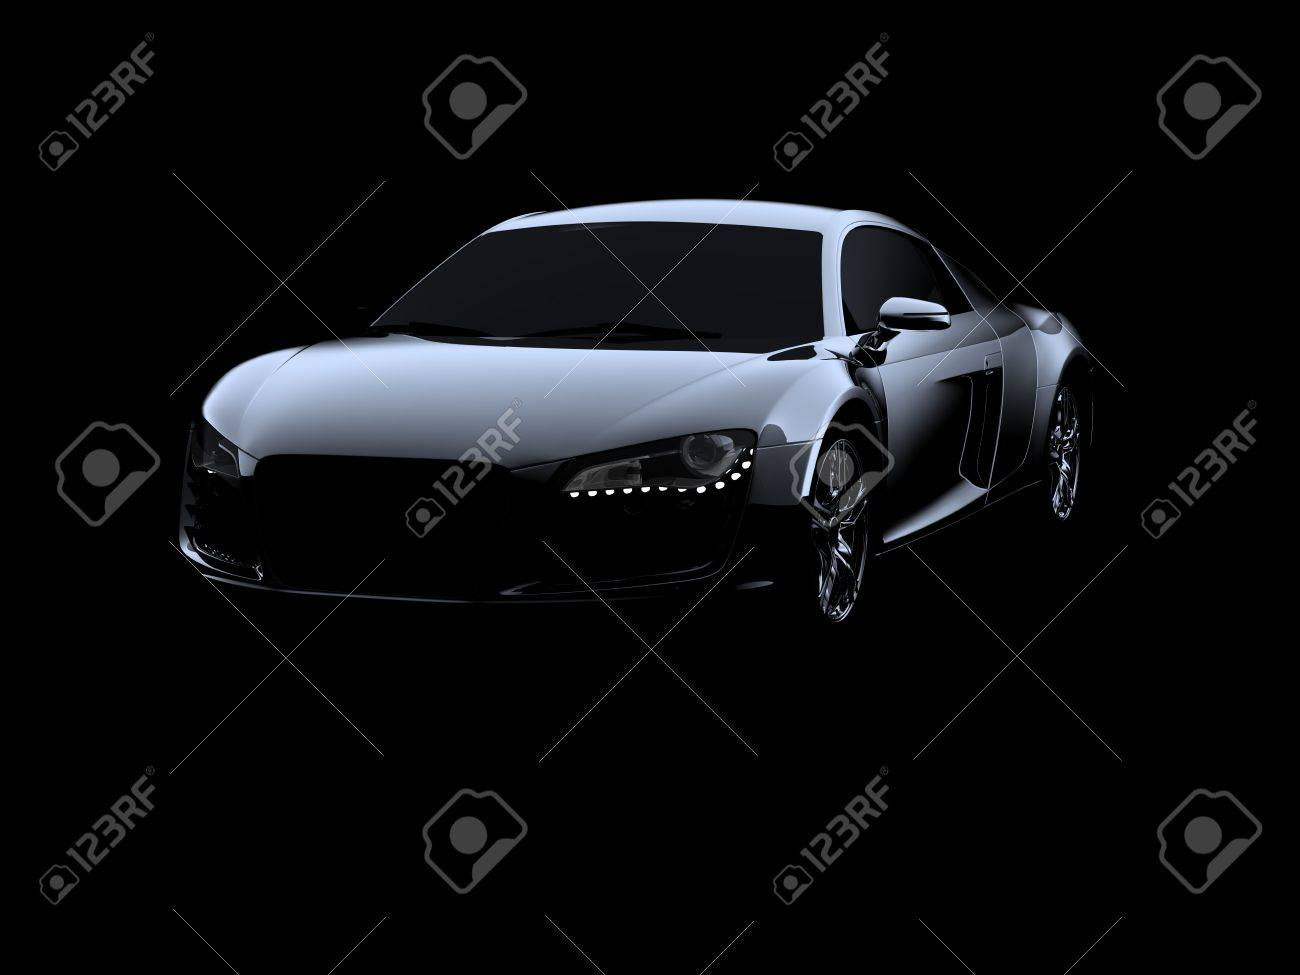 abstract audi r8 on black background stock photo, picture and